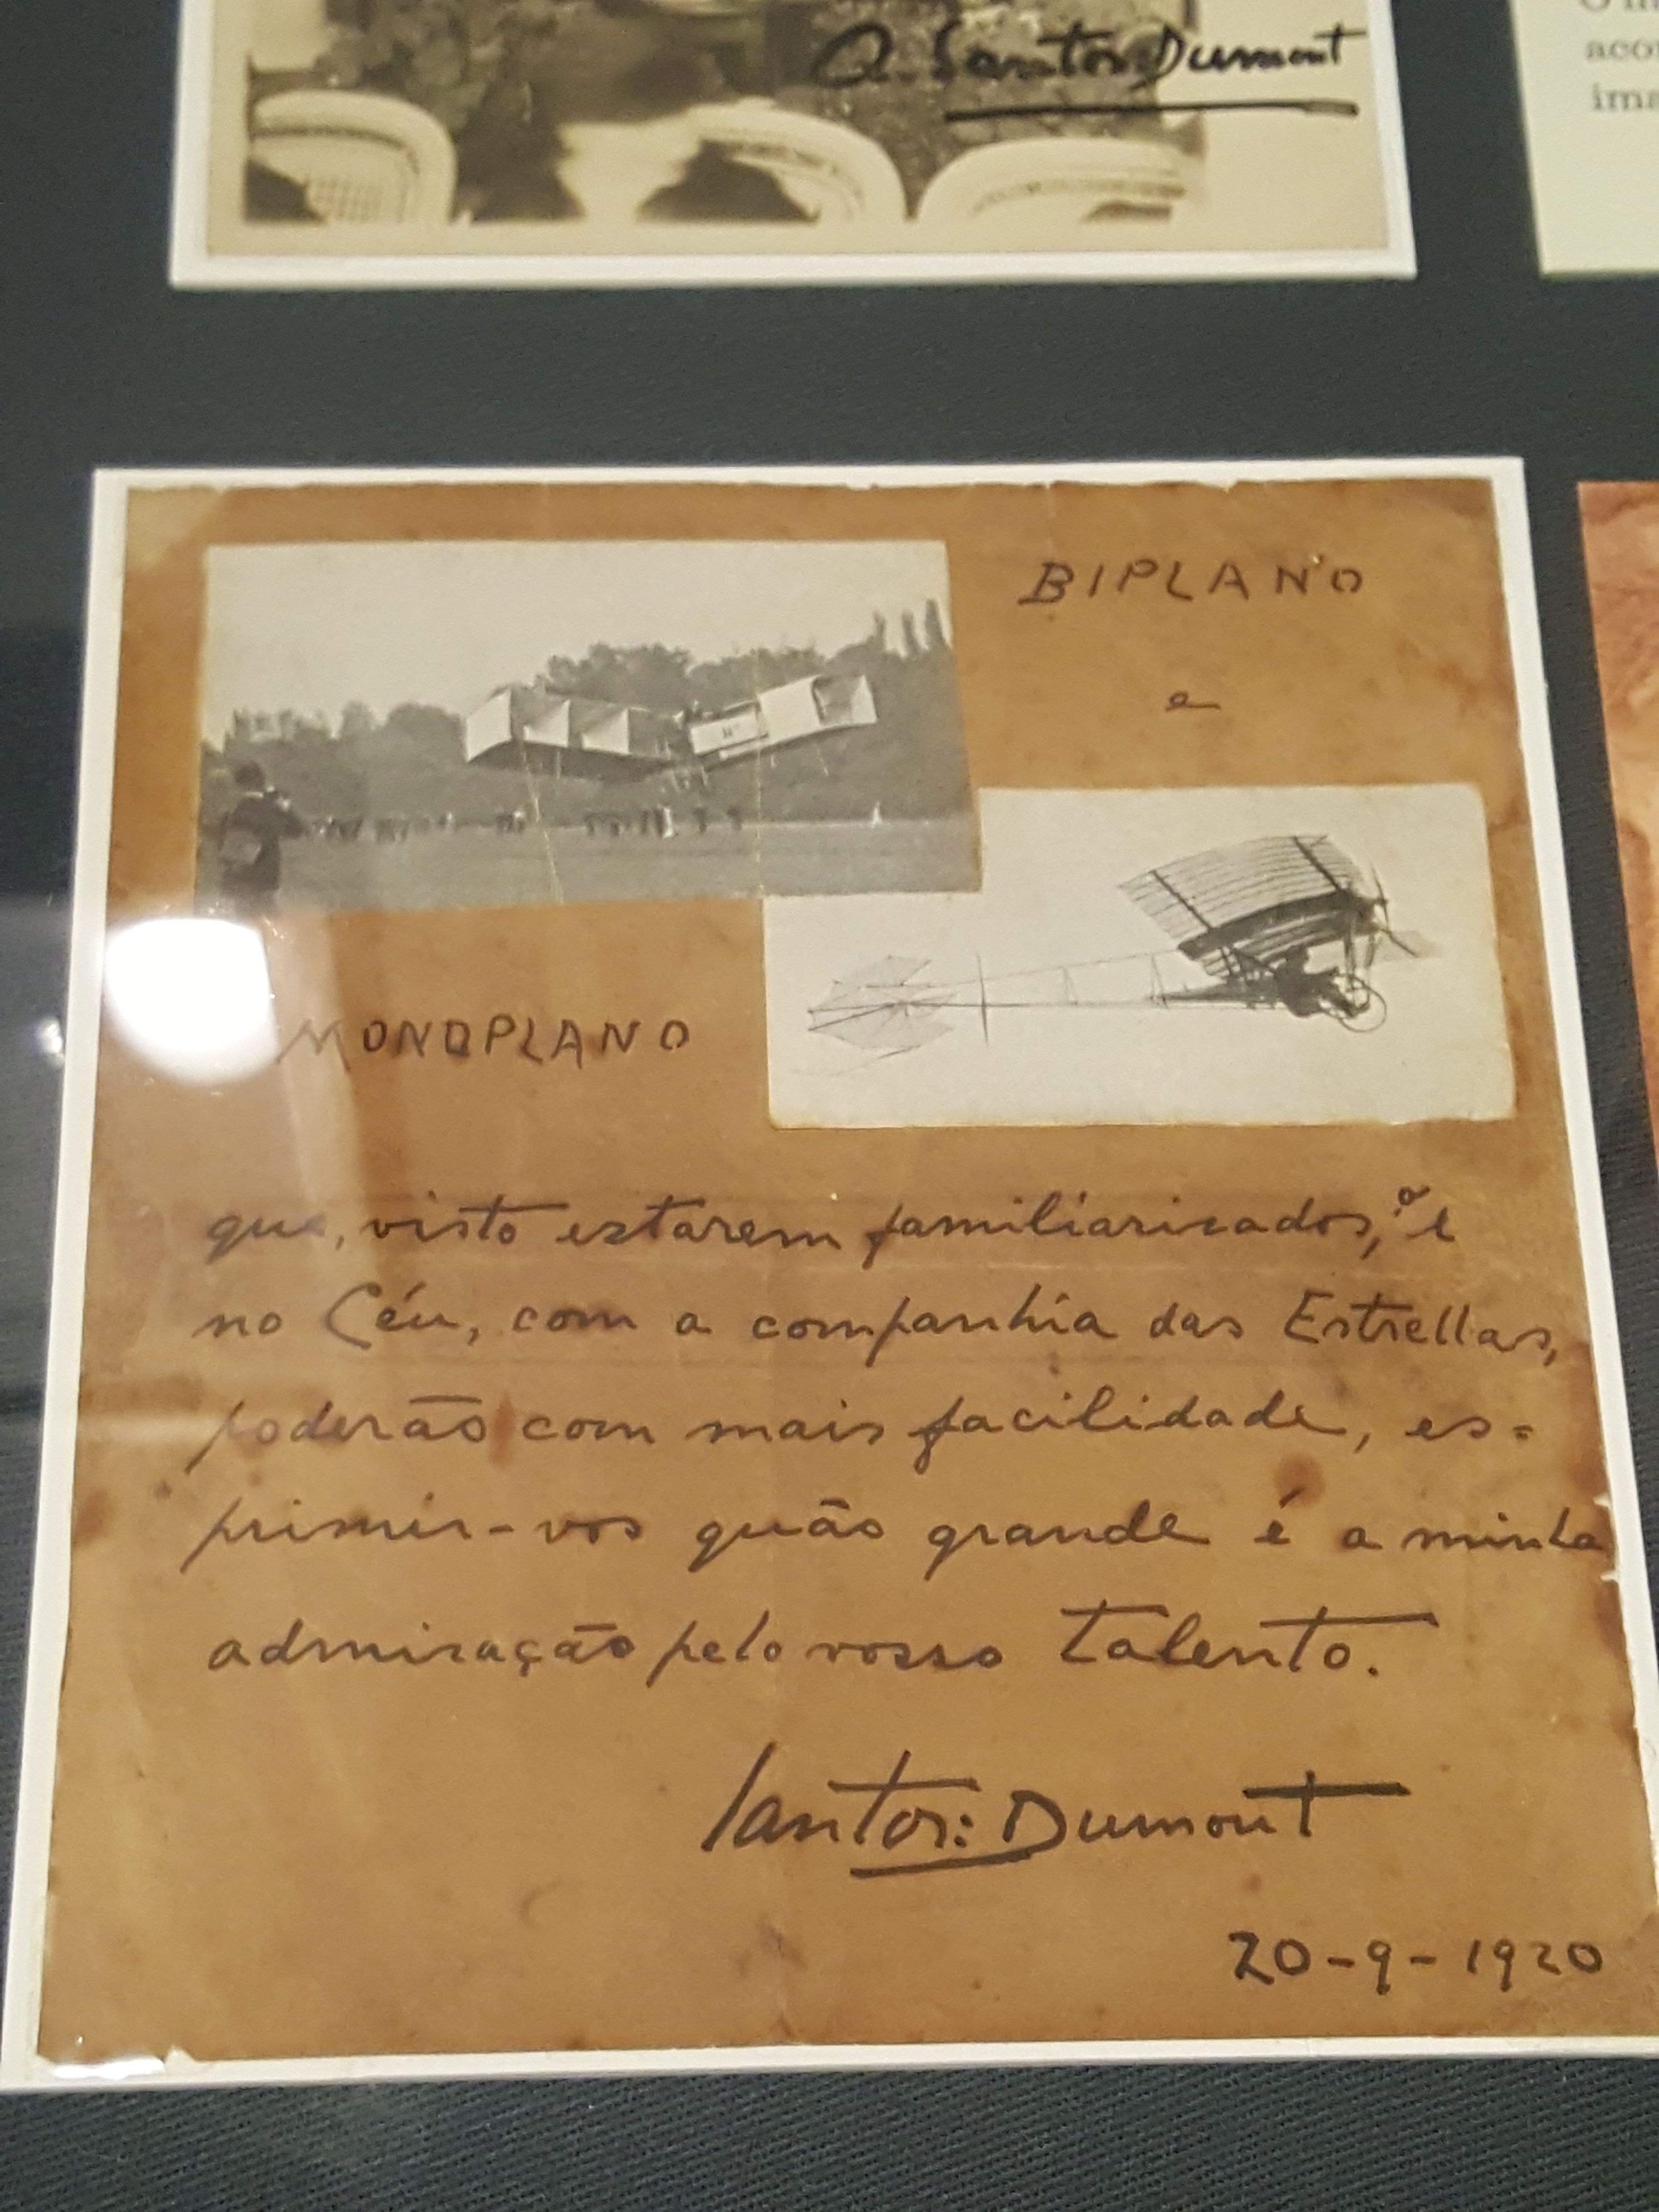 10 December 2016 (18:28) / A 1920 letter from Santos-Dumont, as seen on the SANTOS-DUMONT exhibition at Itaú Cultural, São Paulo City.